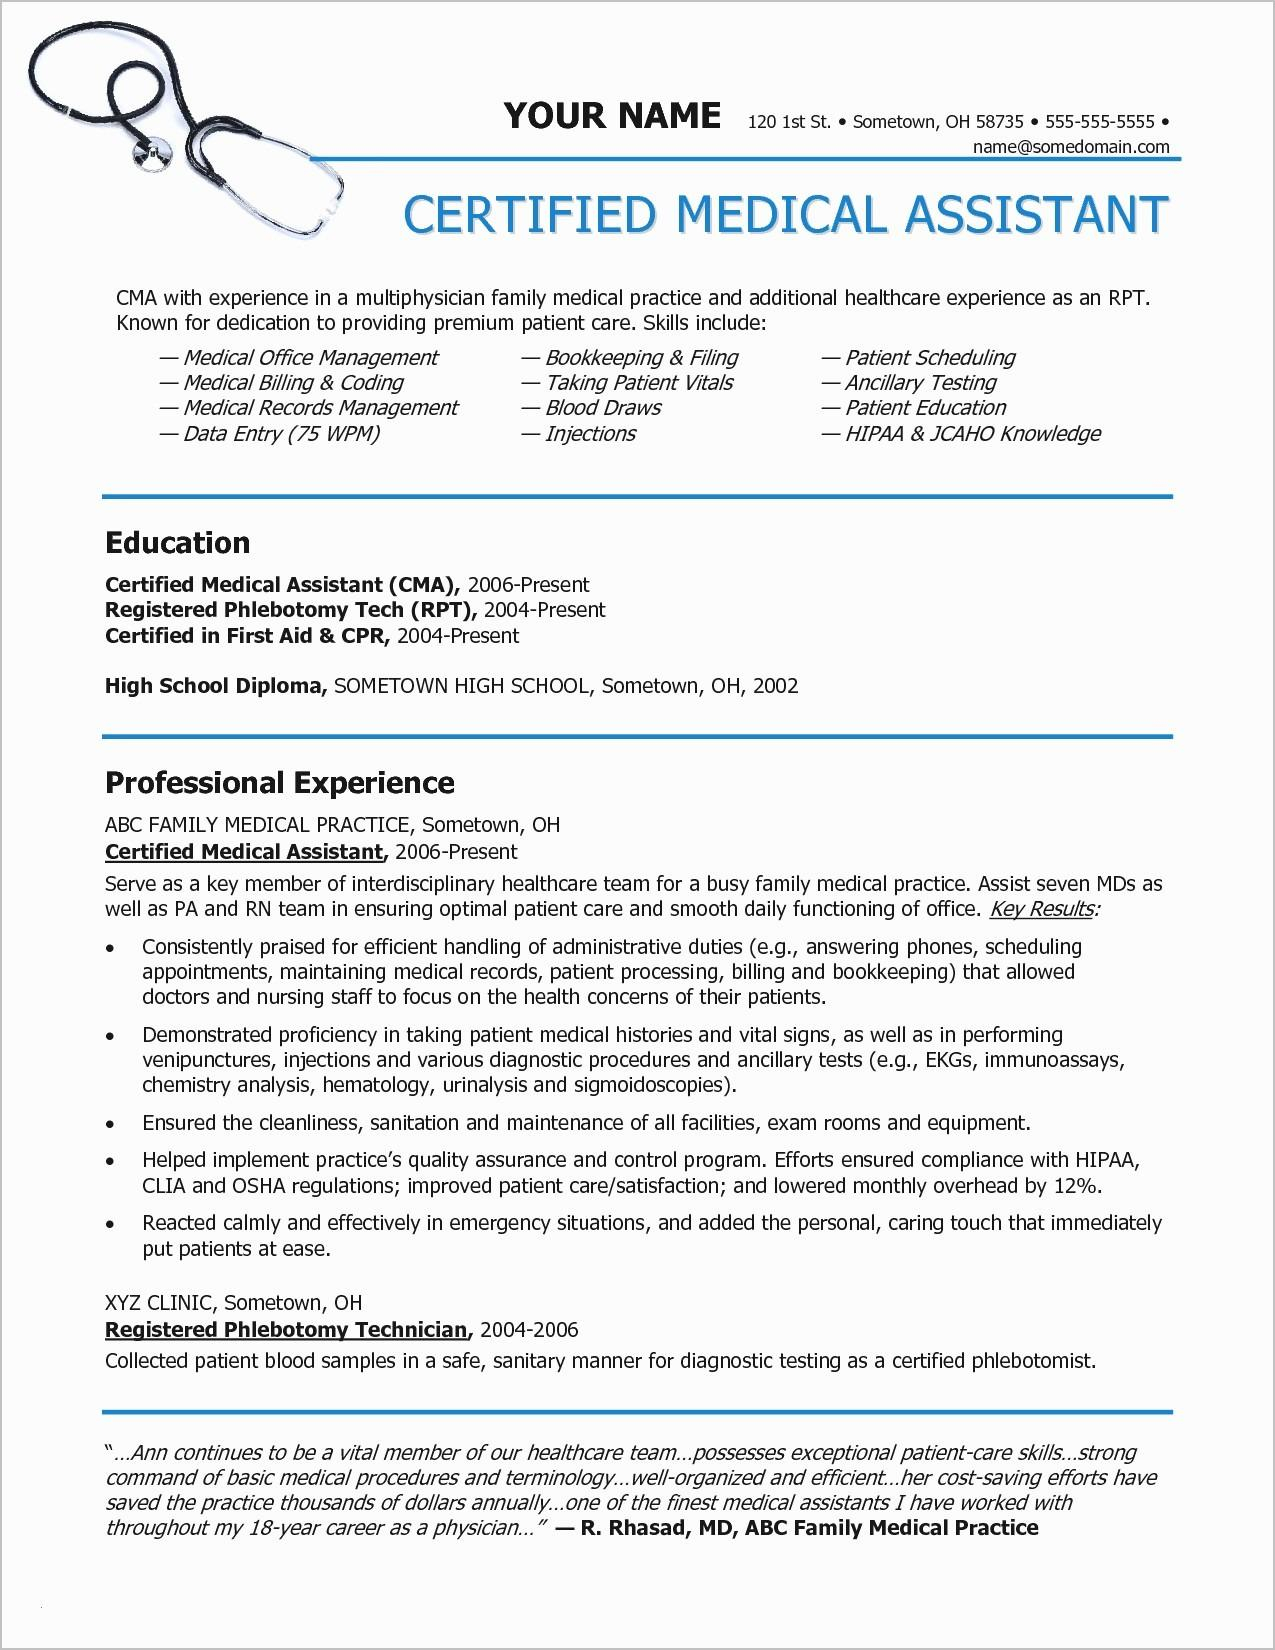 Medical Coder Resume Examples - Medical Coding Resume Samples Unique Charming Ideas Medical Coder